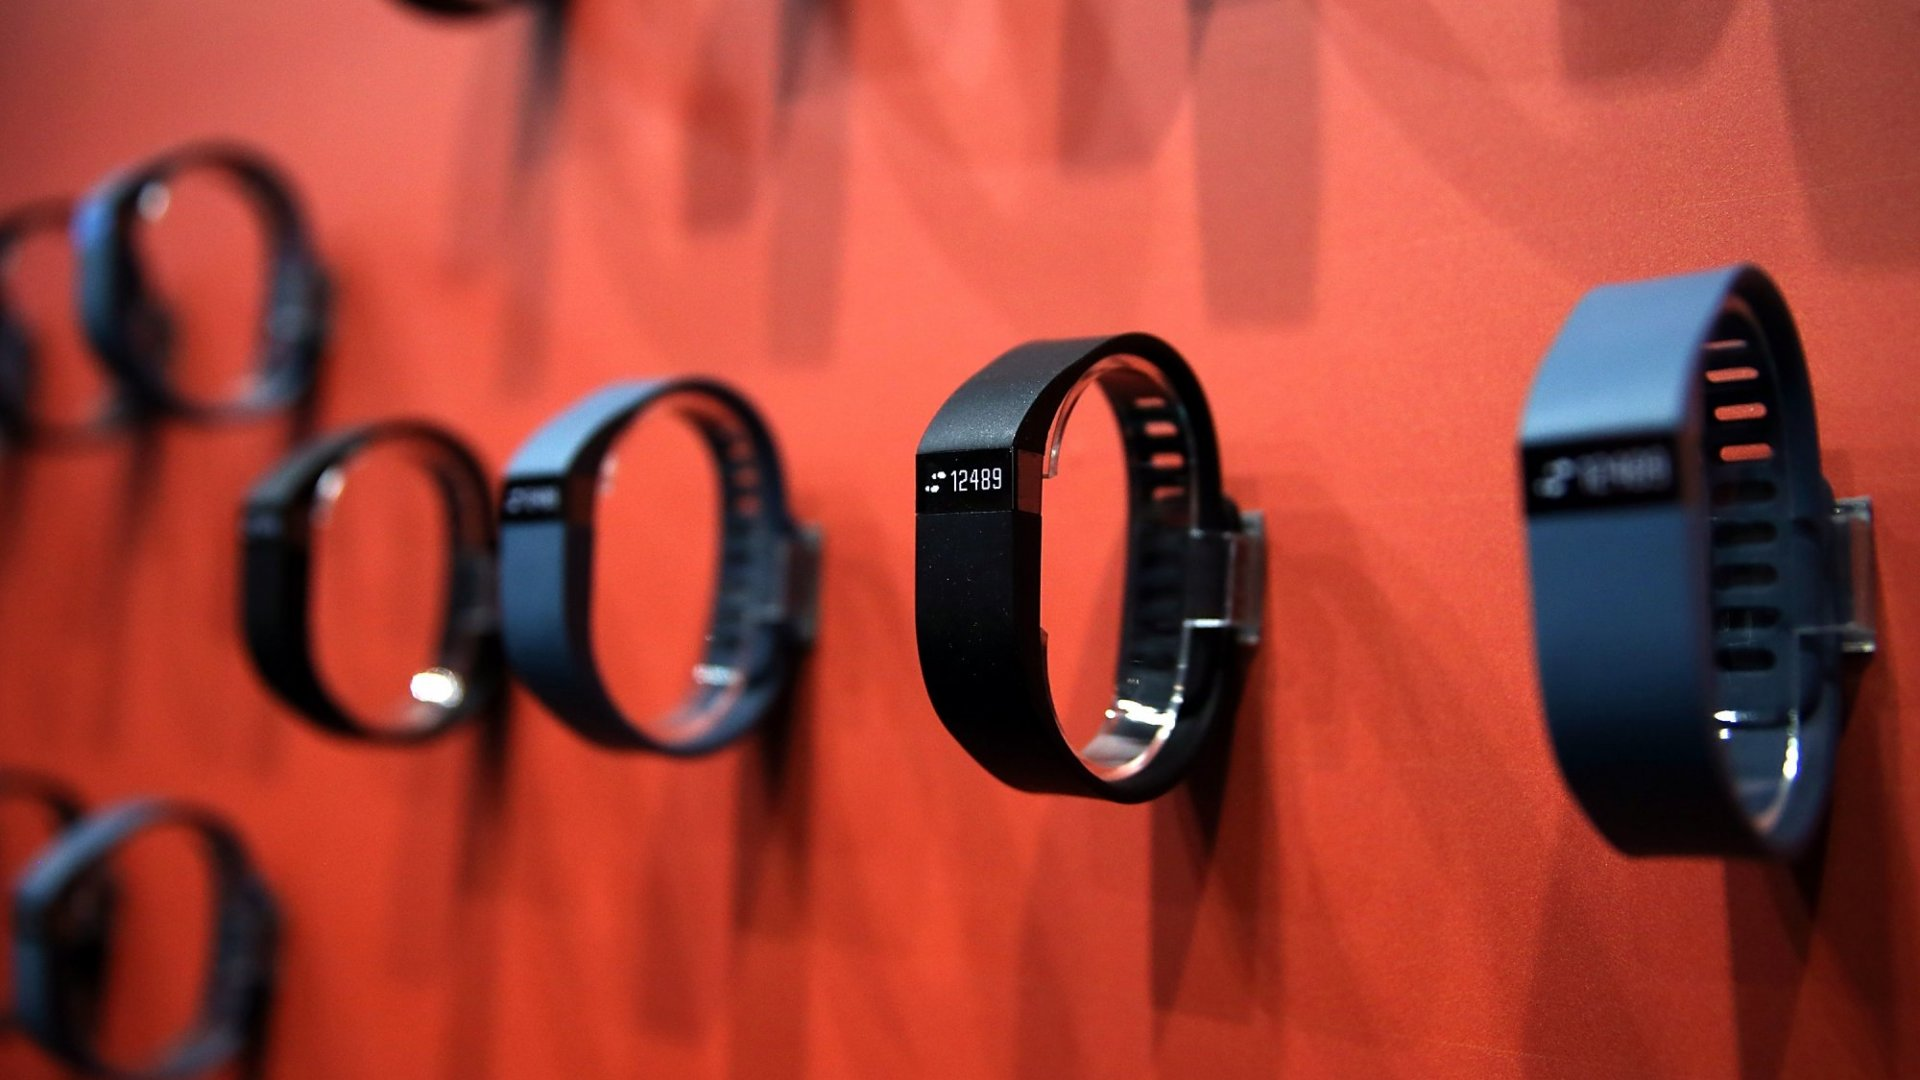 Wearables Maker Fitbit Files for IPO